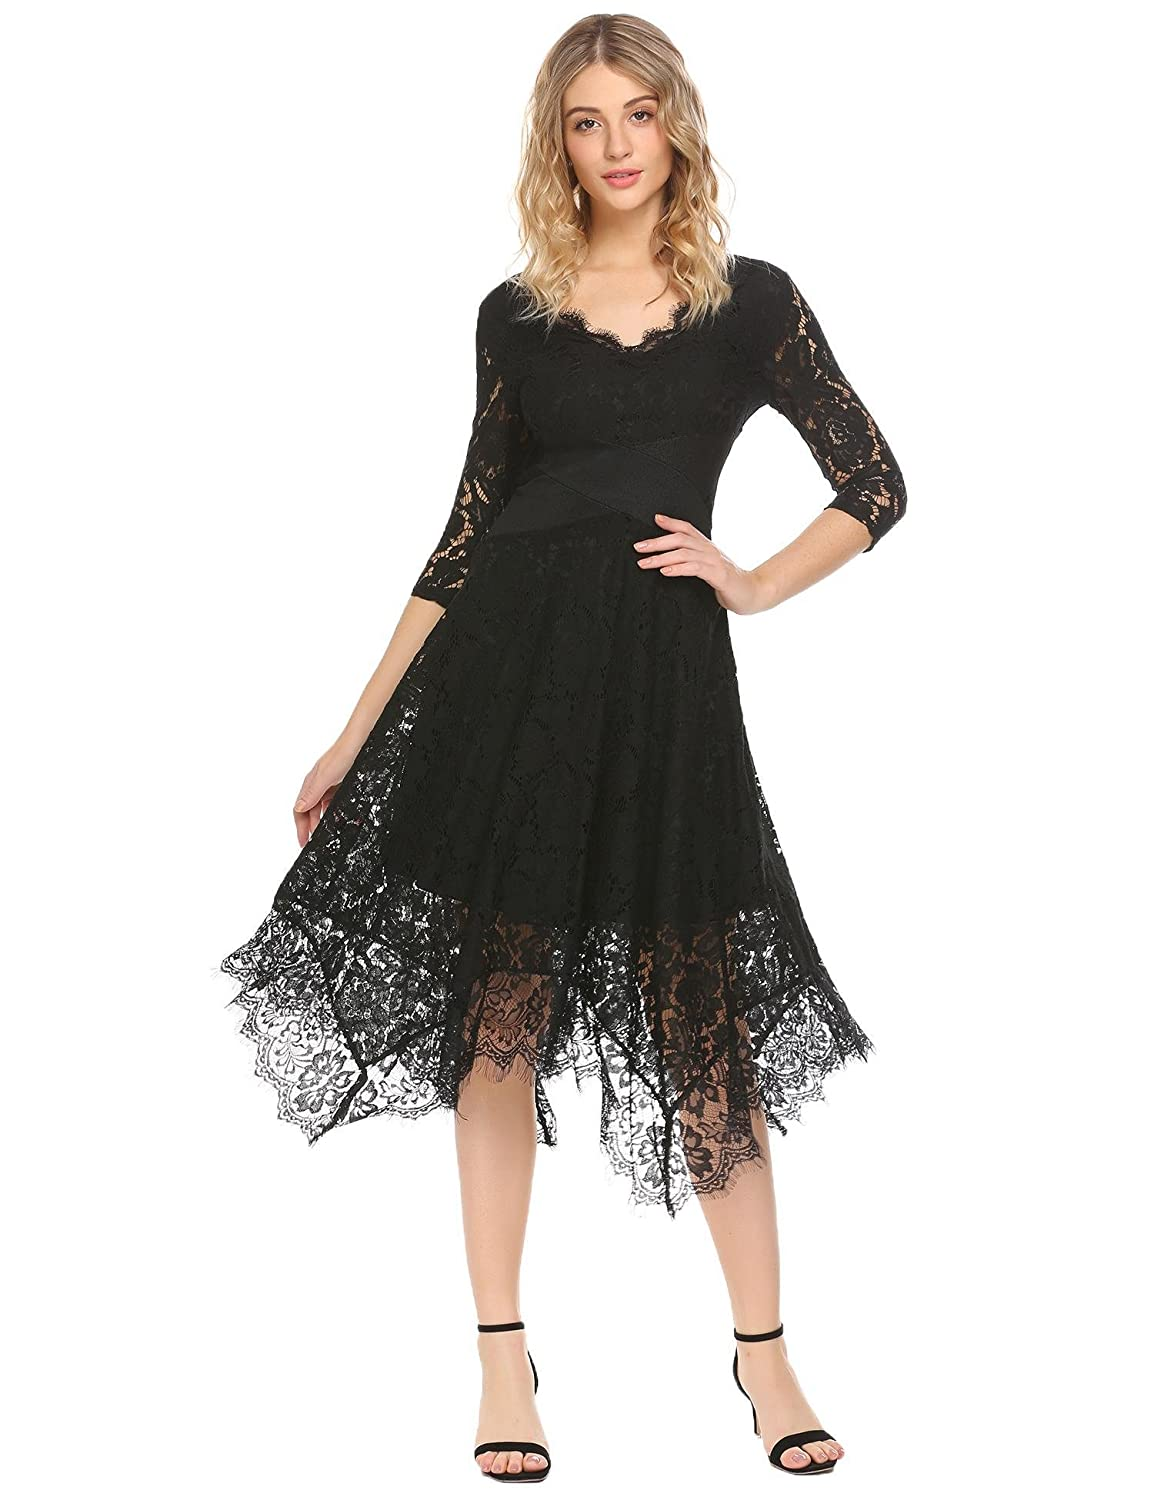 ACEVOG Women's Summer Half Sleeve Sheer Lace V Neck X Waist Irregular Hem Cocktail Party Dress